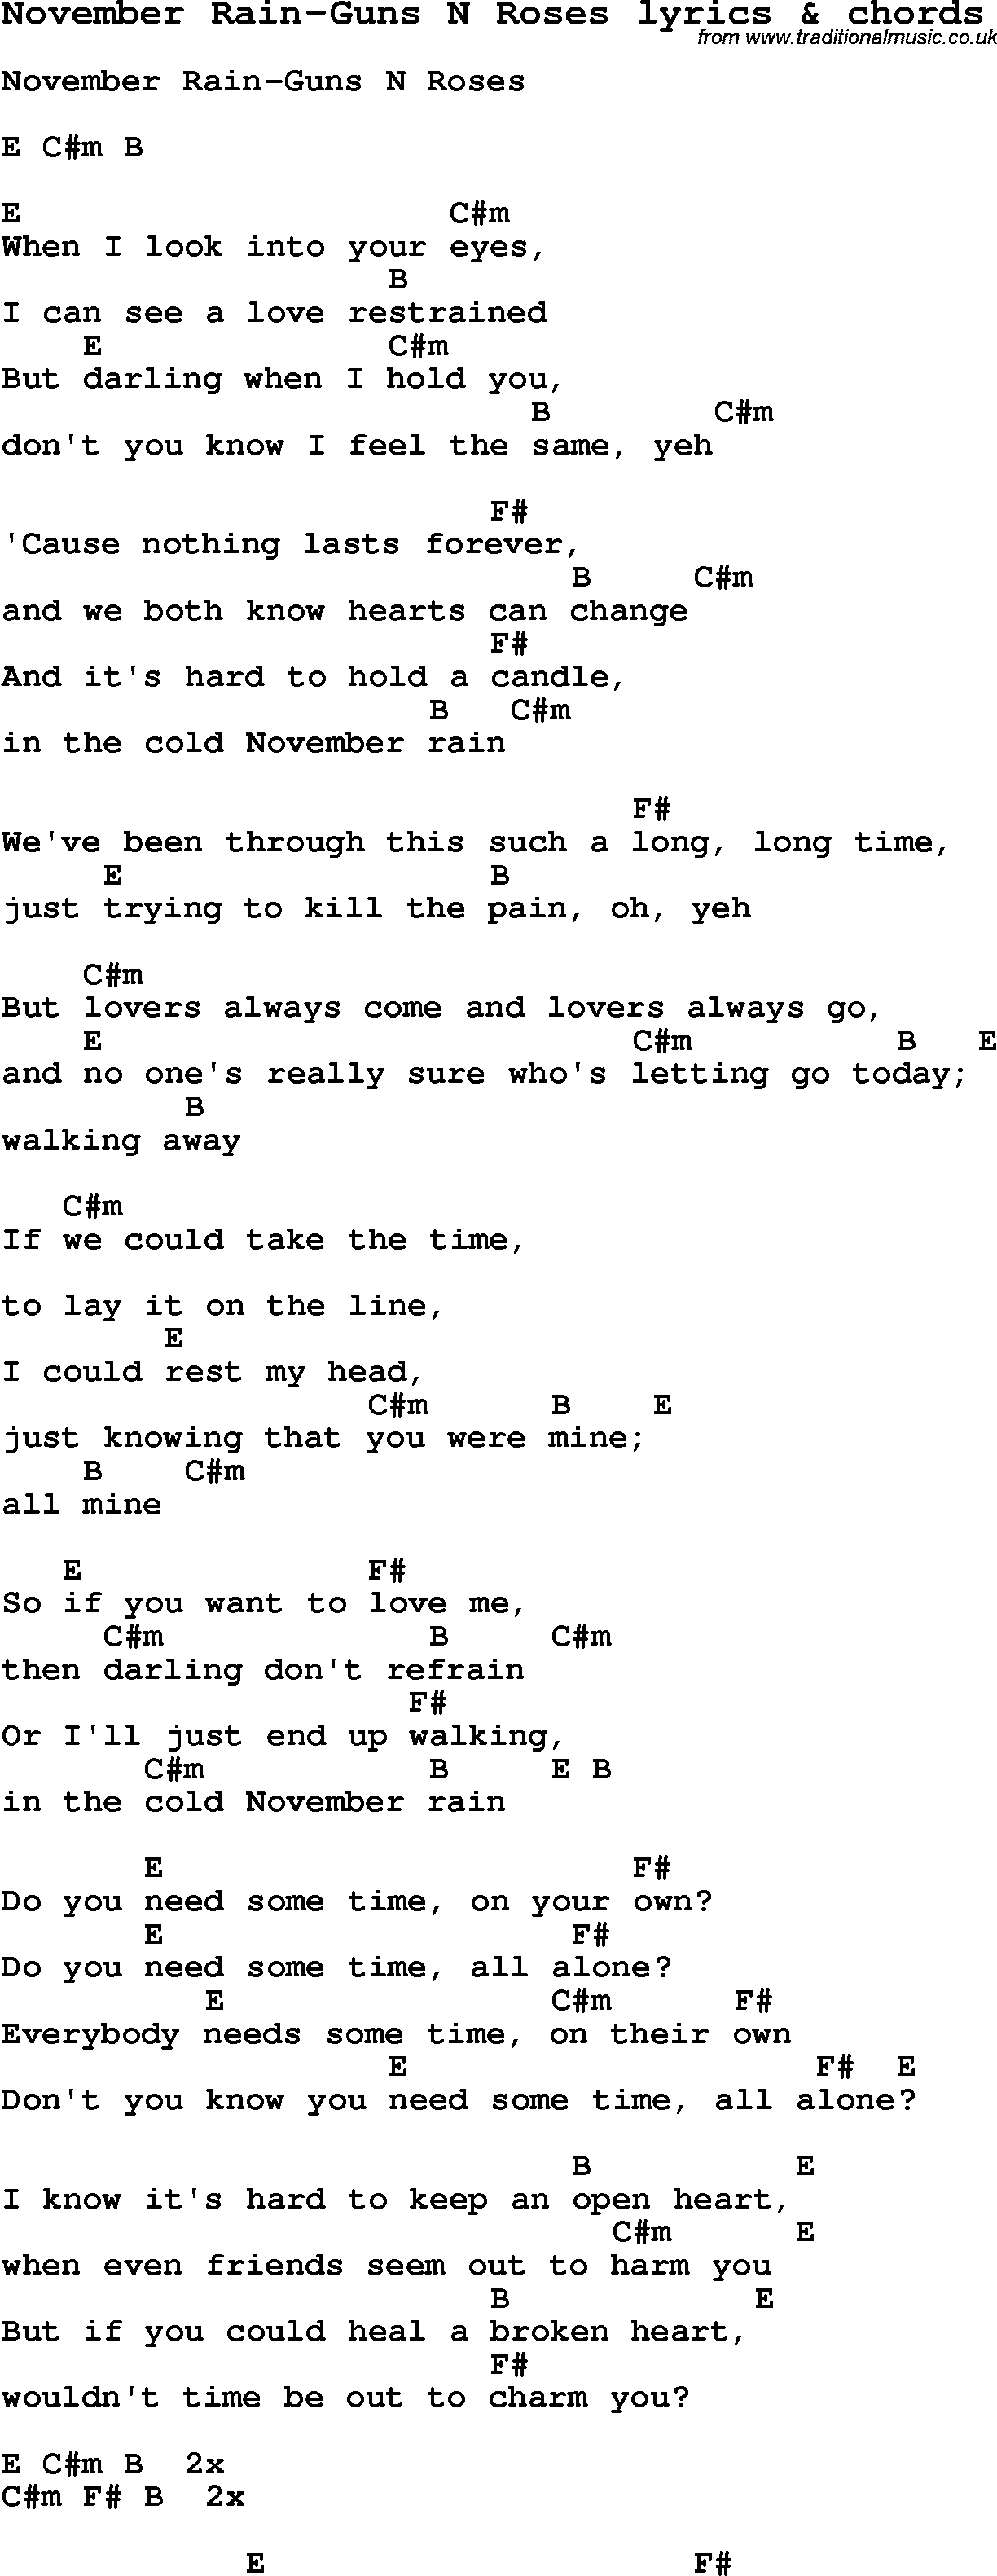 Love song lyrics for november rain guns n roses with chords for love song lyrics for november rain guns n roses with chords for ukulele hexwebz Choice Image